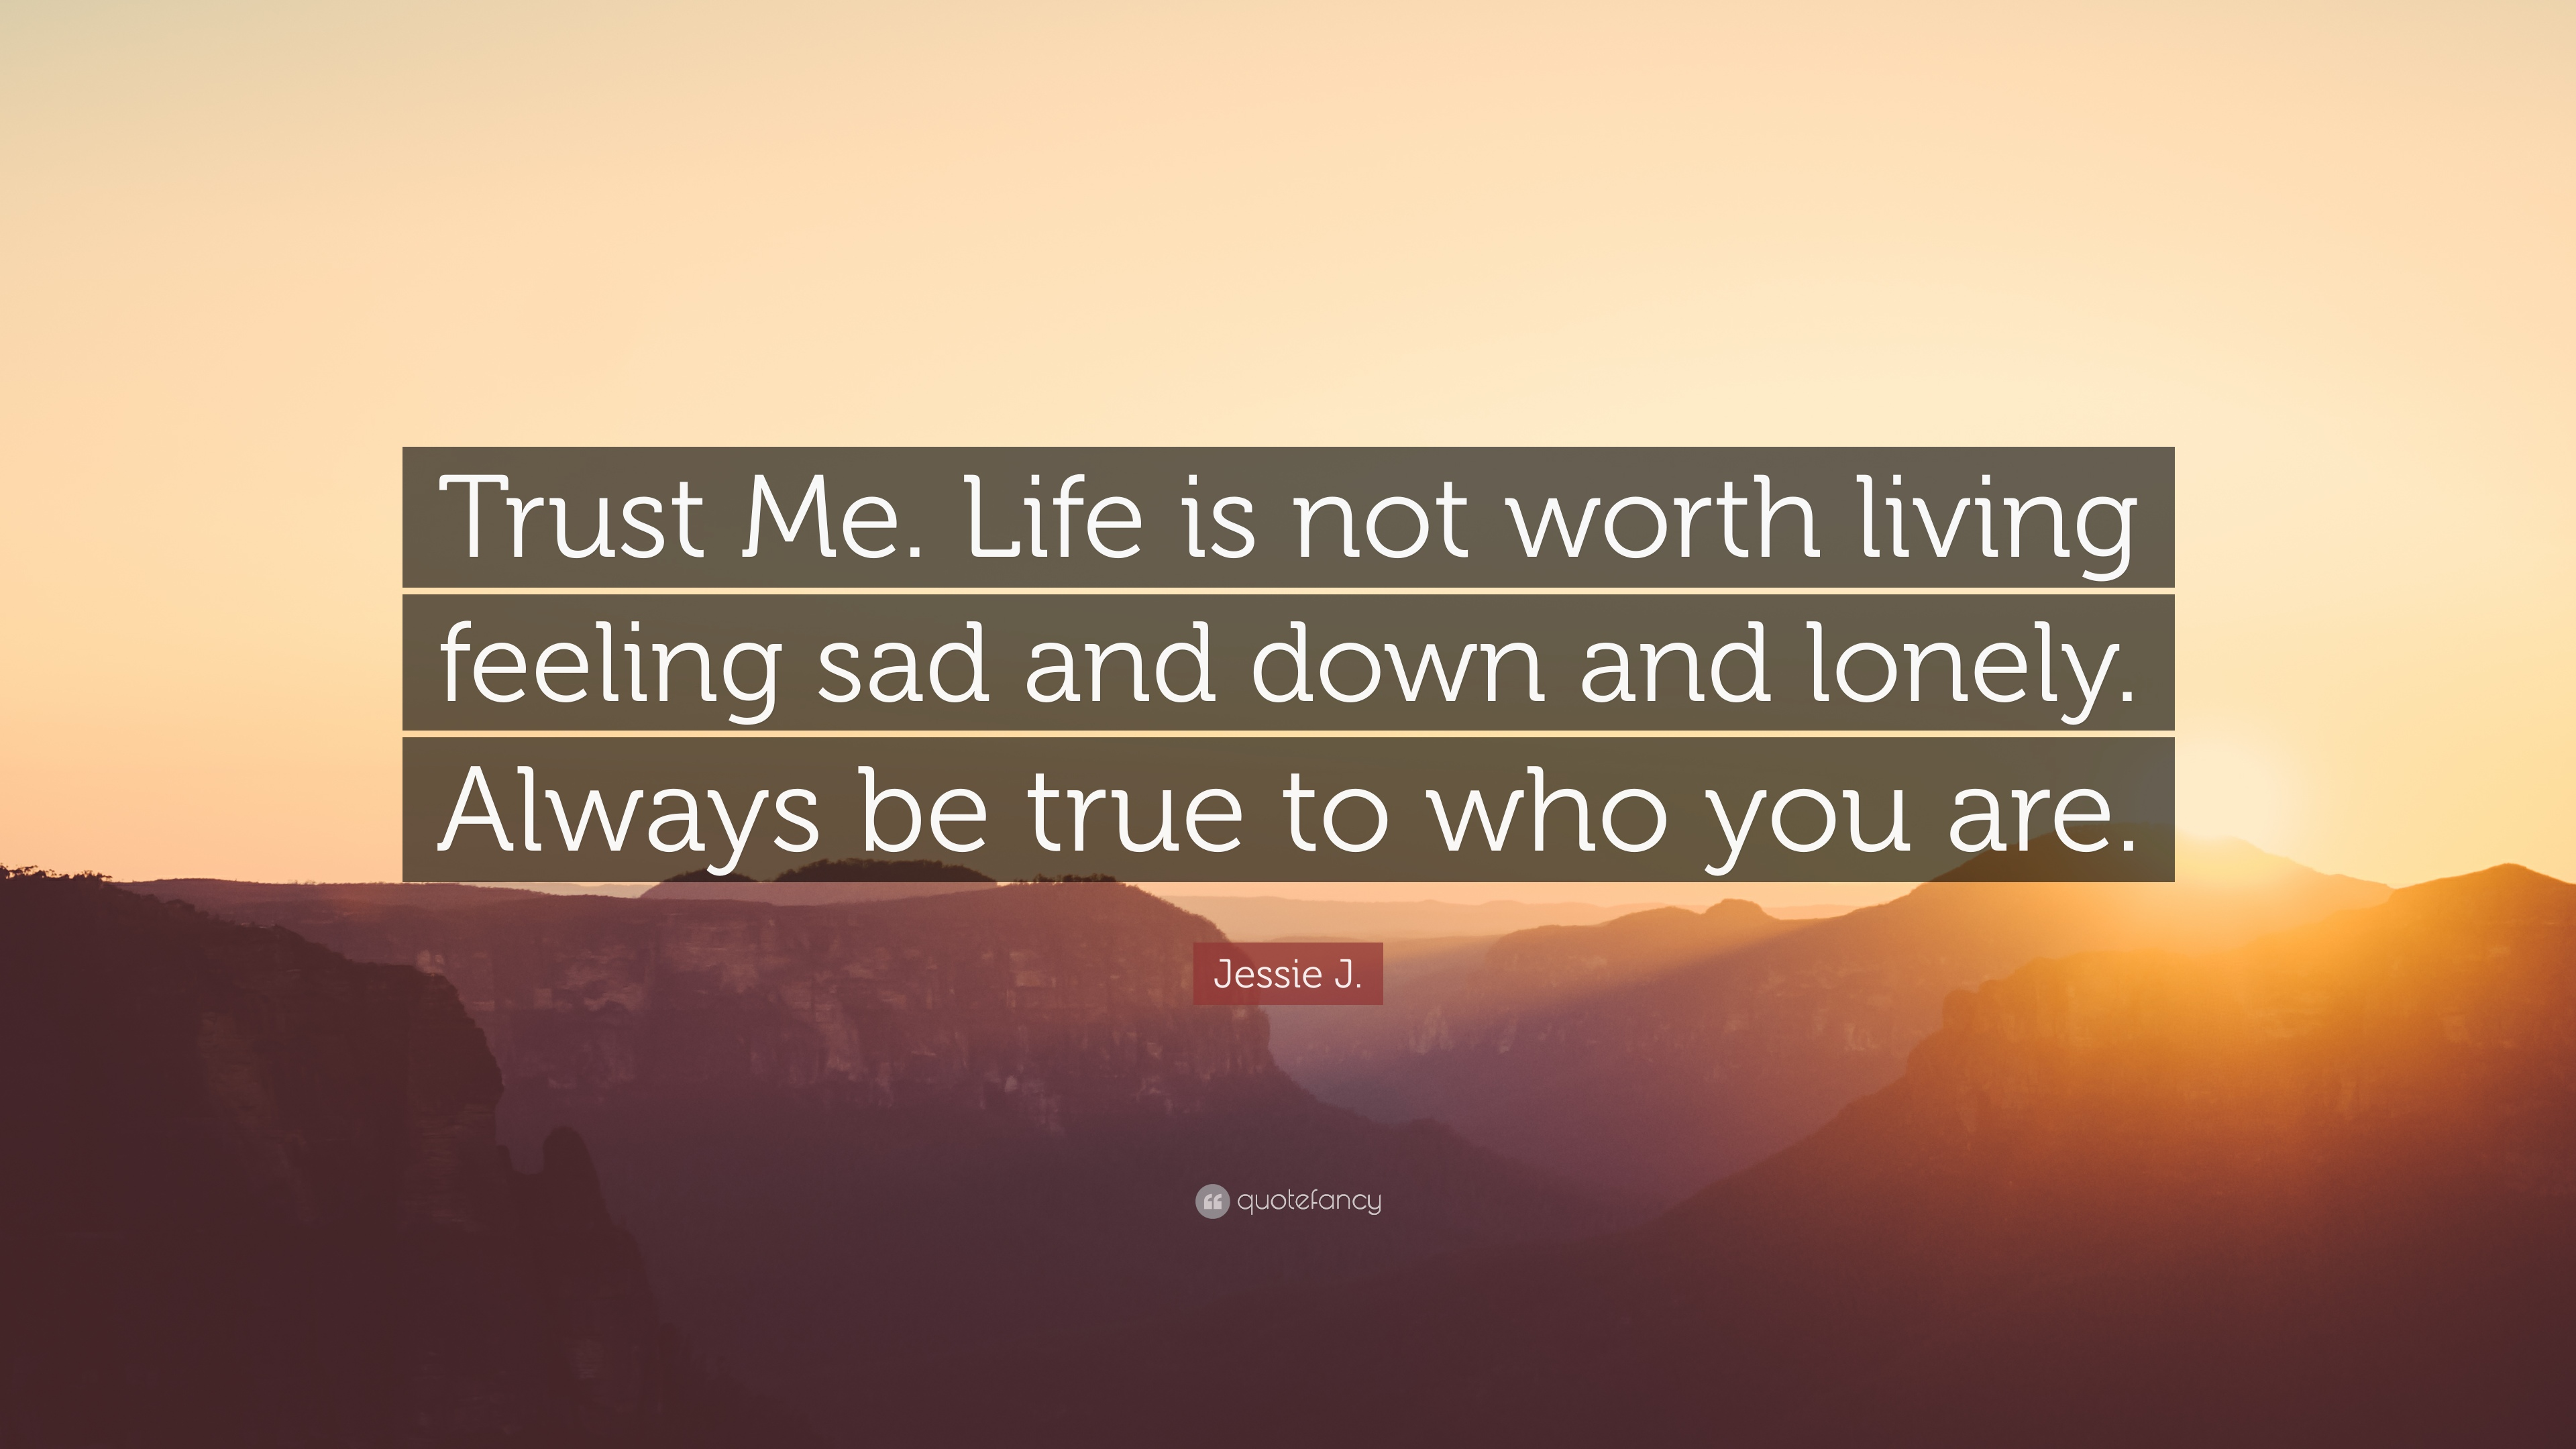 Jessie J Quote Trust Me Life Is Not Worth Living Feeling Sad And Down And Lonely Always Be True To Who You Are 7 Wallpapers Quotefancy